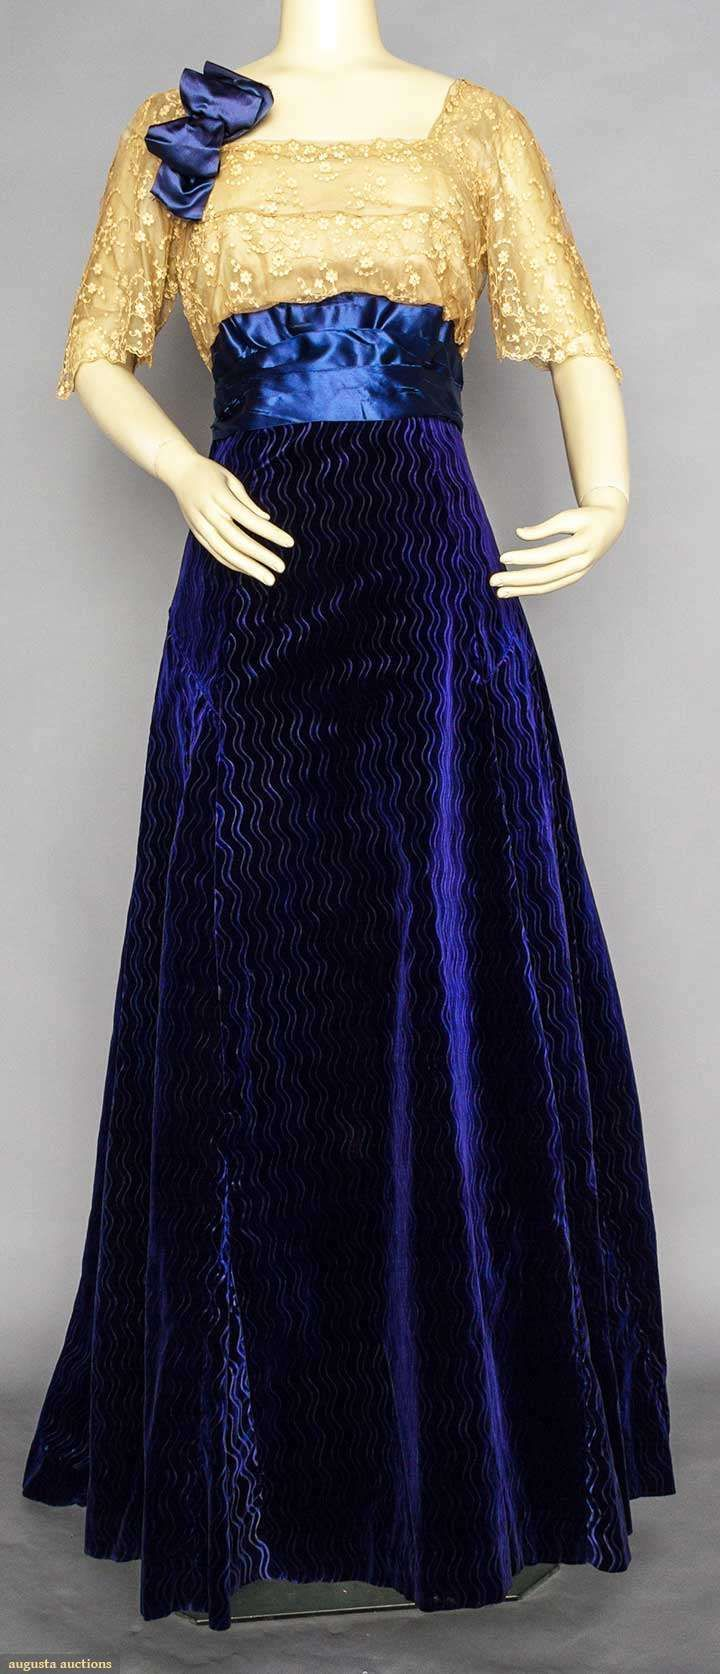 Evening Gown (image 1) | 1910-1912 | velvet, satin, lace | Augusta Auctions | November 11, 2015/Lot 29